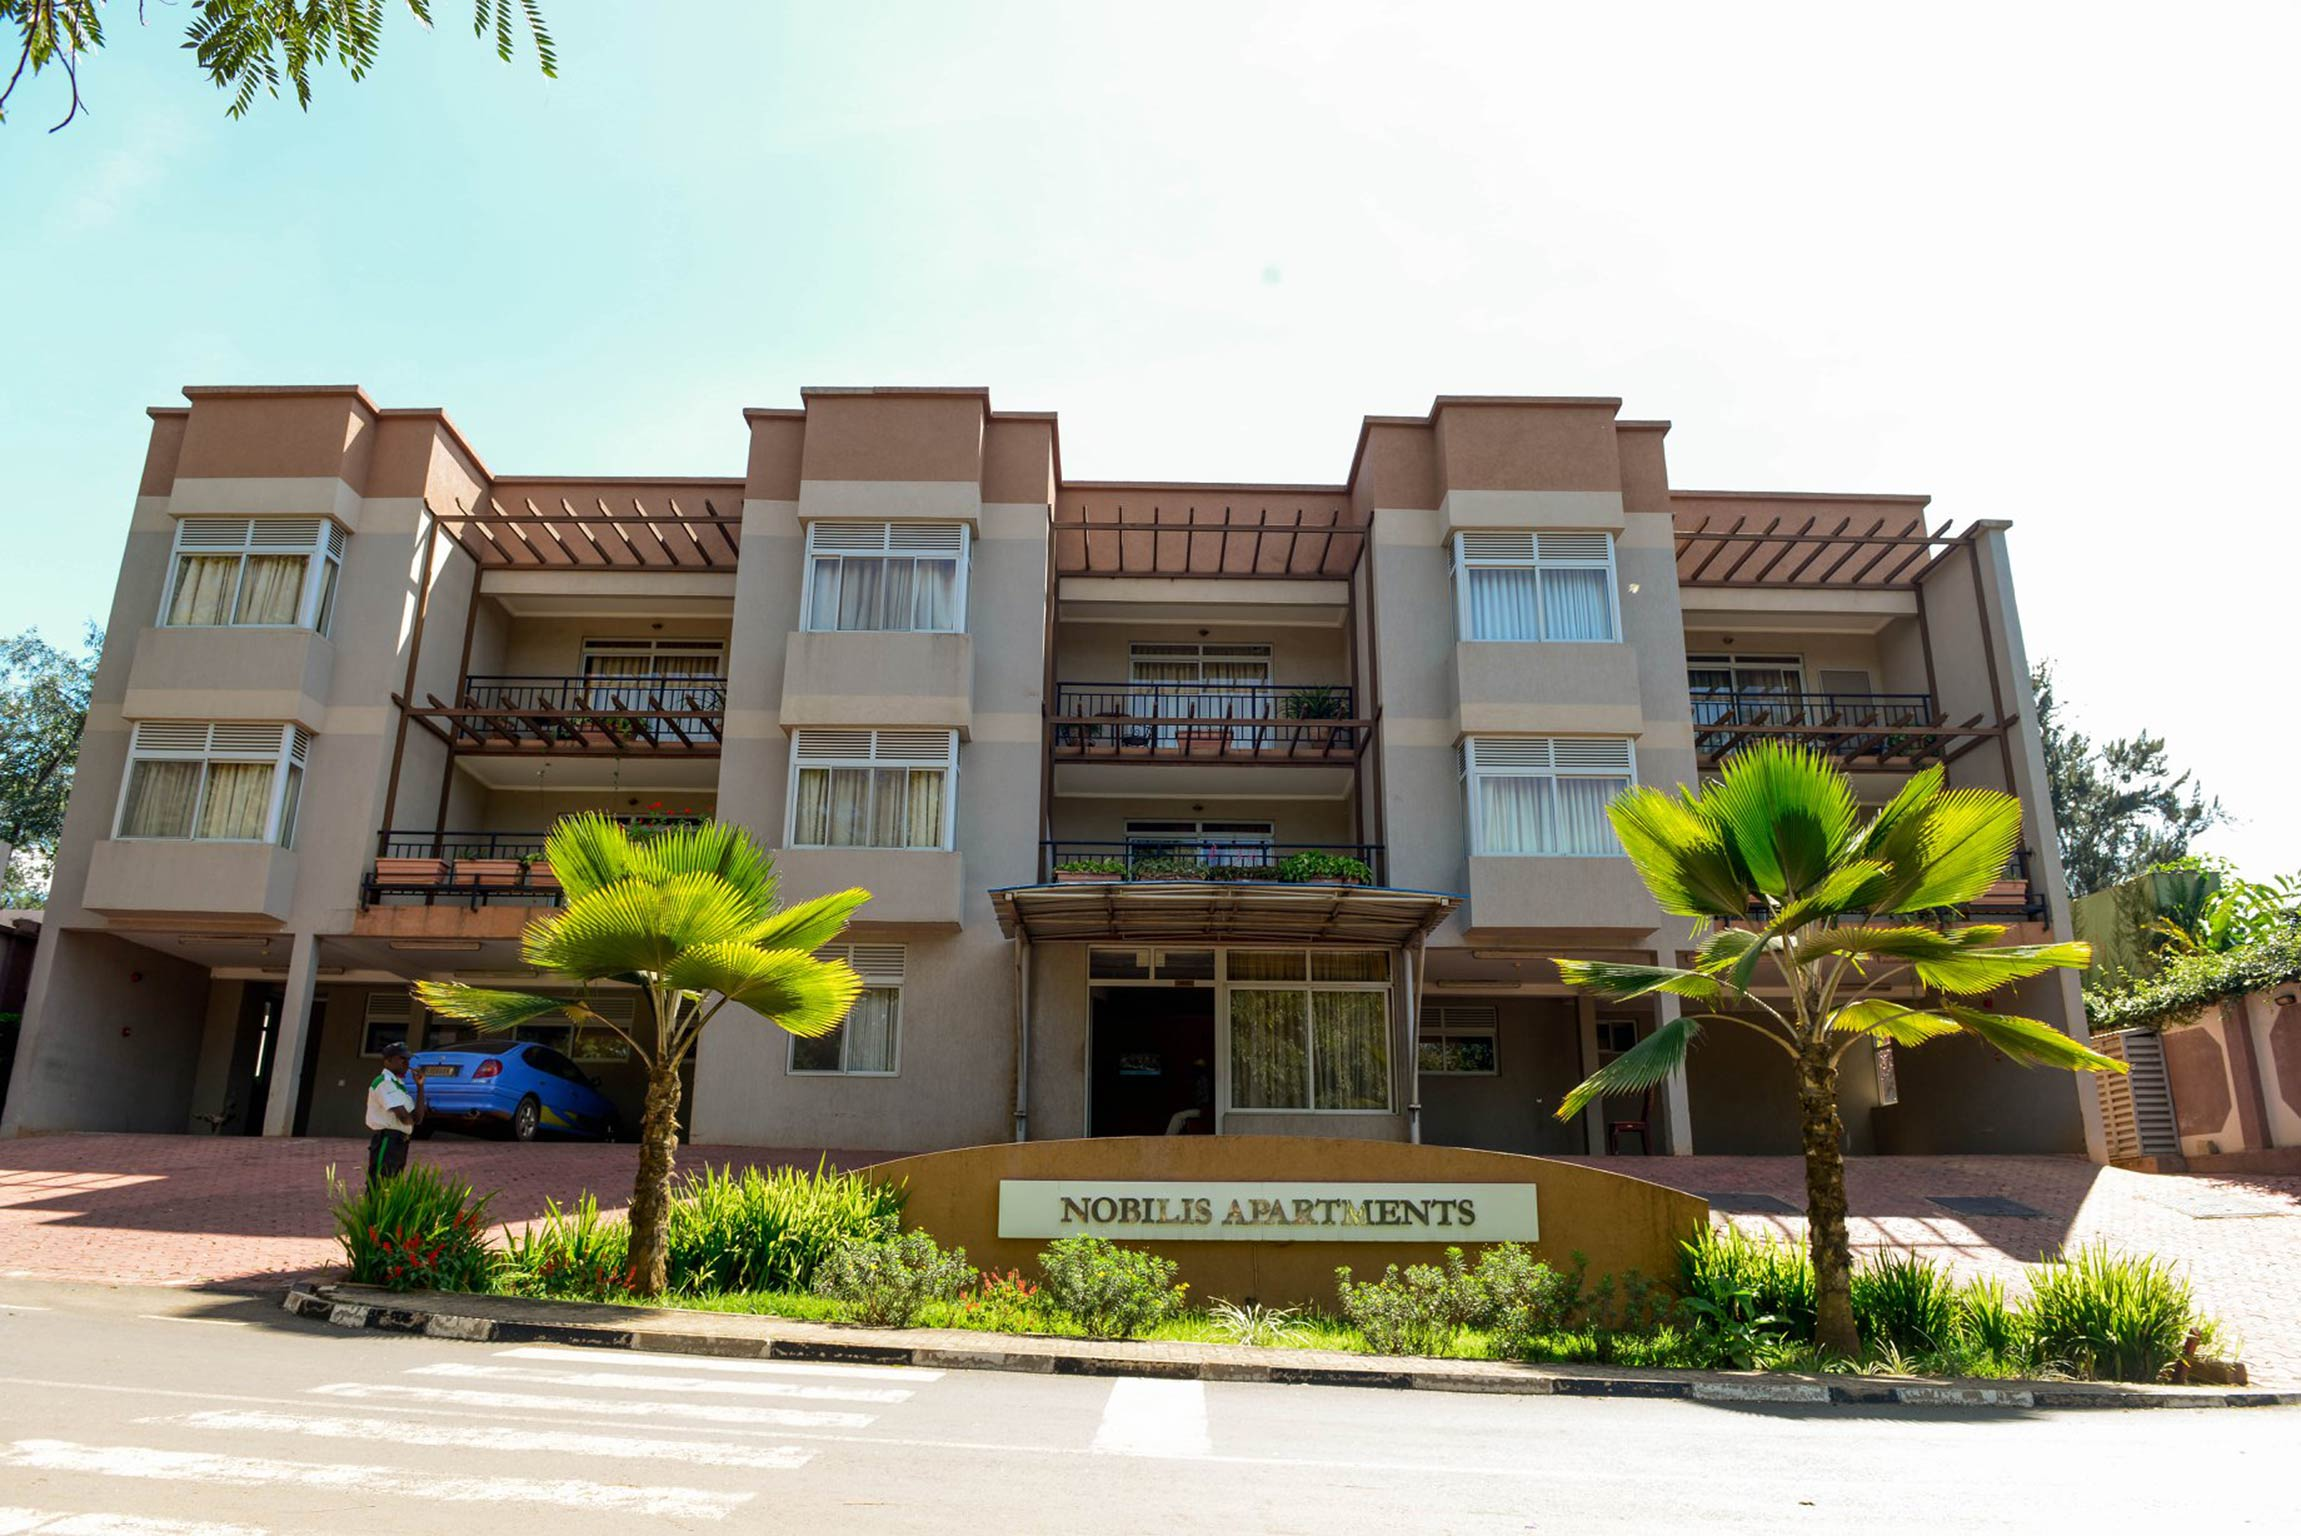 Visit Kigali and have a wonderfully stay at Nobilis Senior Suite